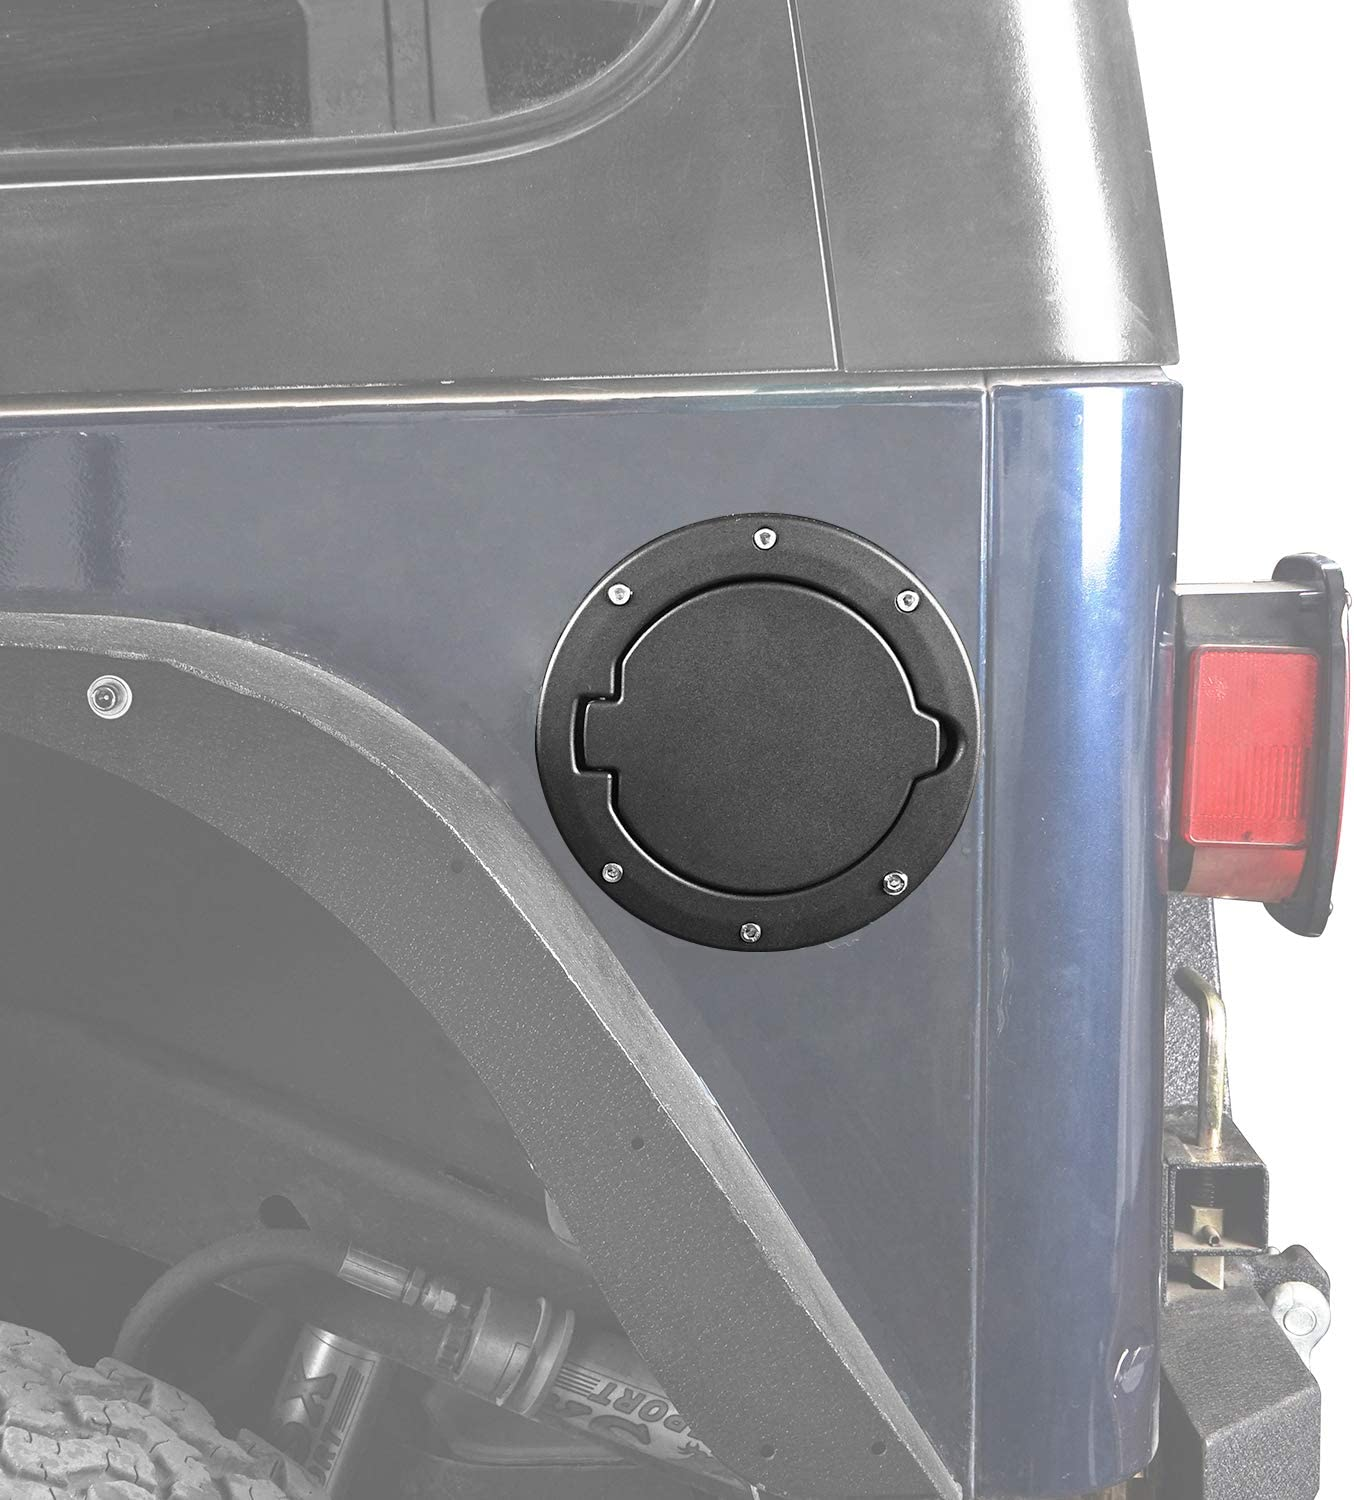 u-Box Jeep Wrangler TJ 97-06 Fuel Gas Tank Cap Cover